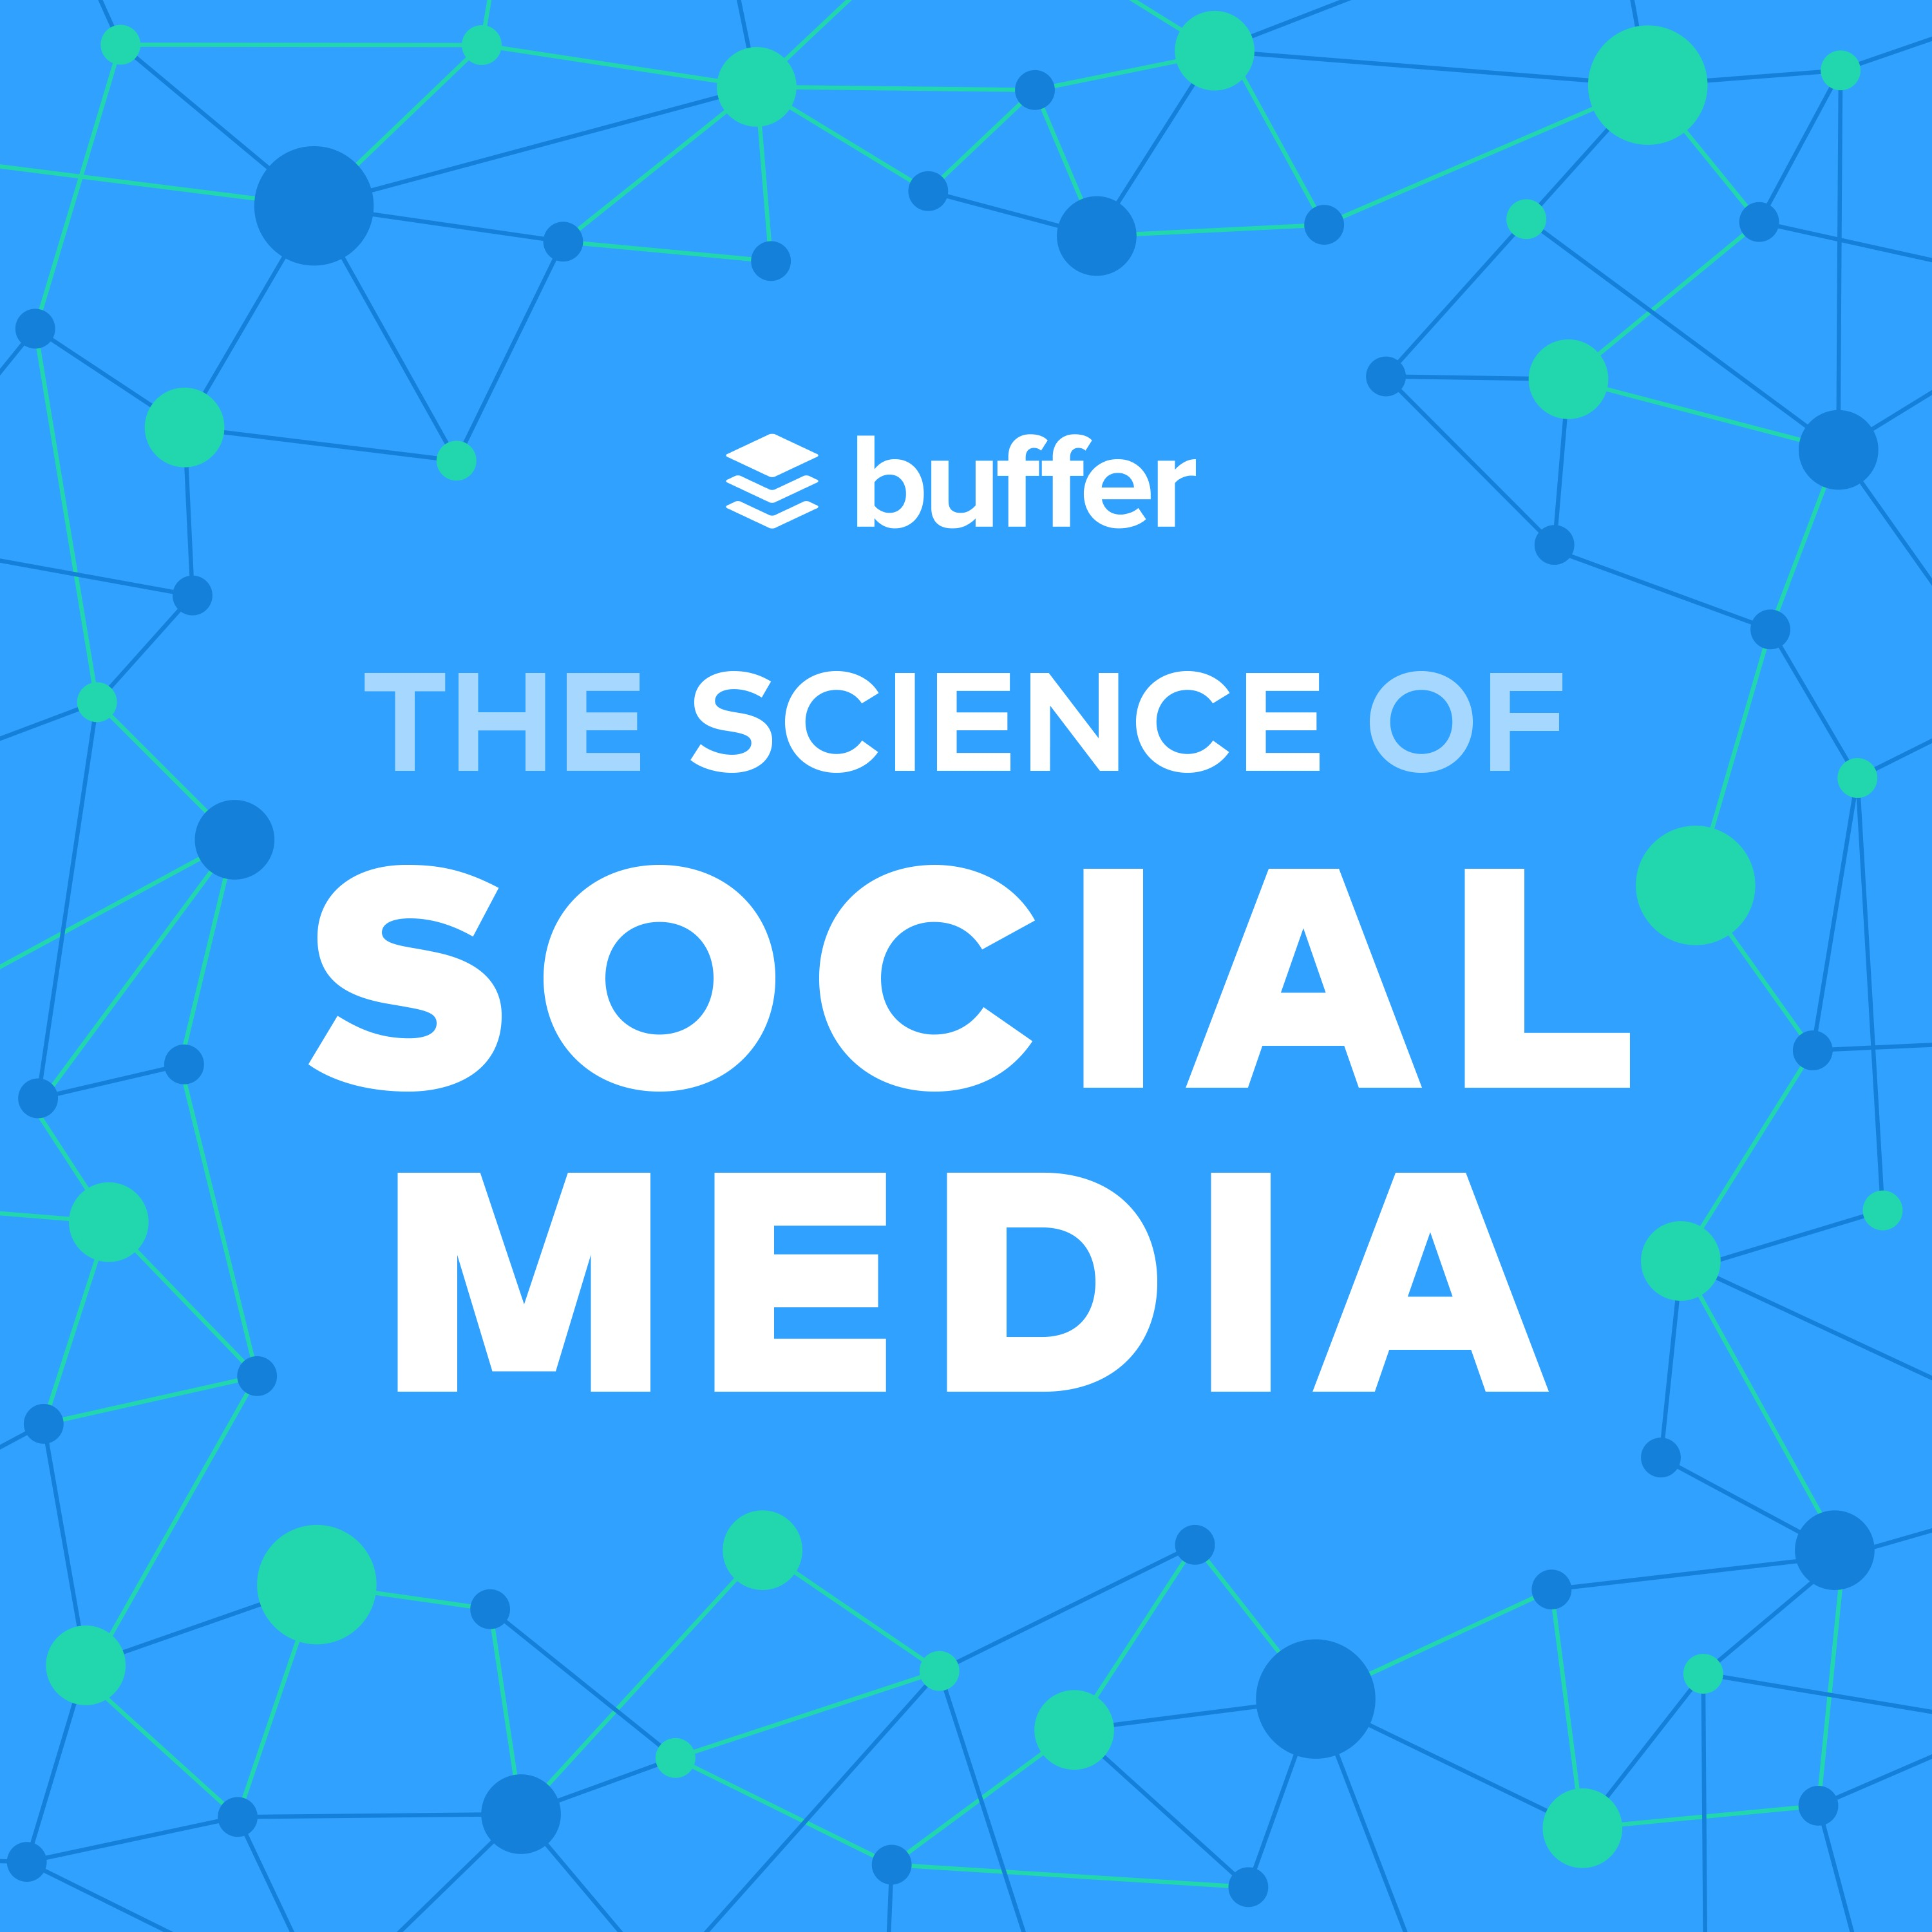 130: 6 Powerful Psychological Biases And How They Influencer Human Behavior Online